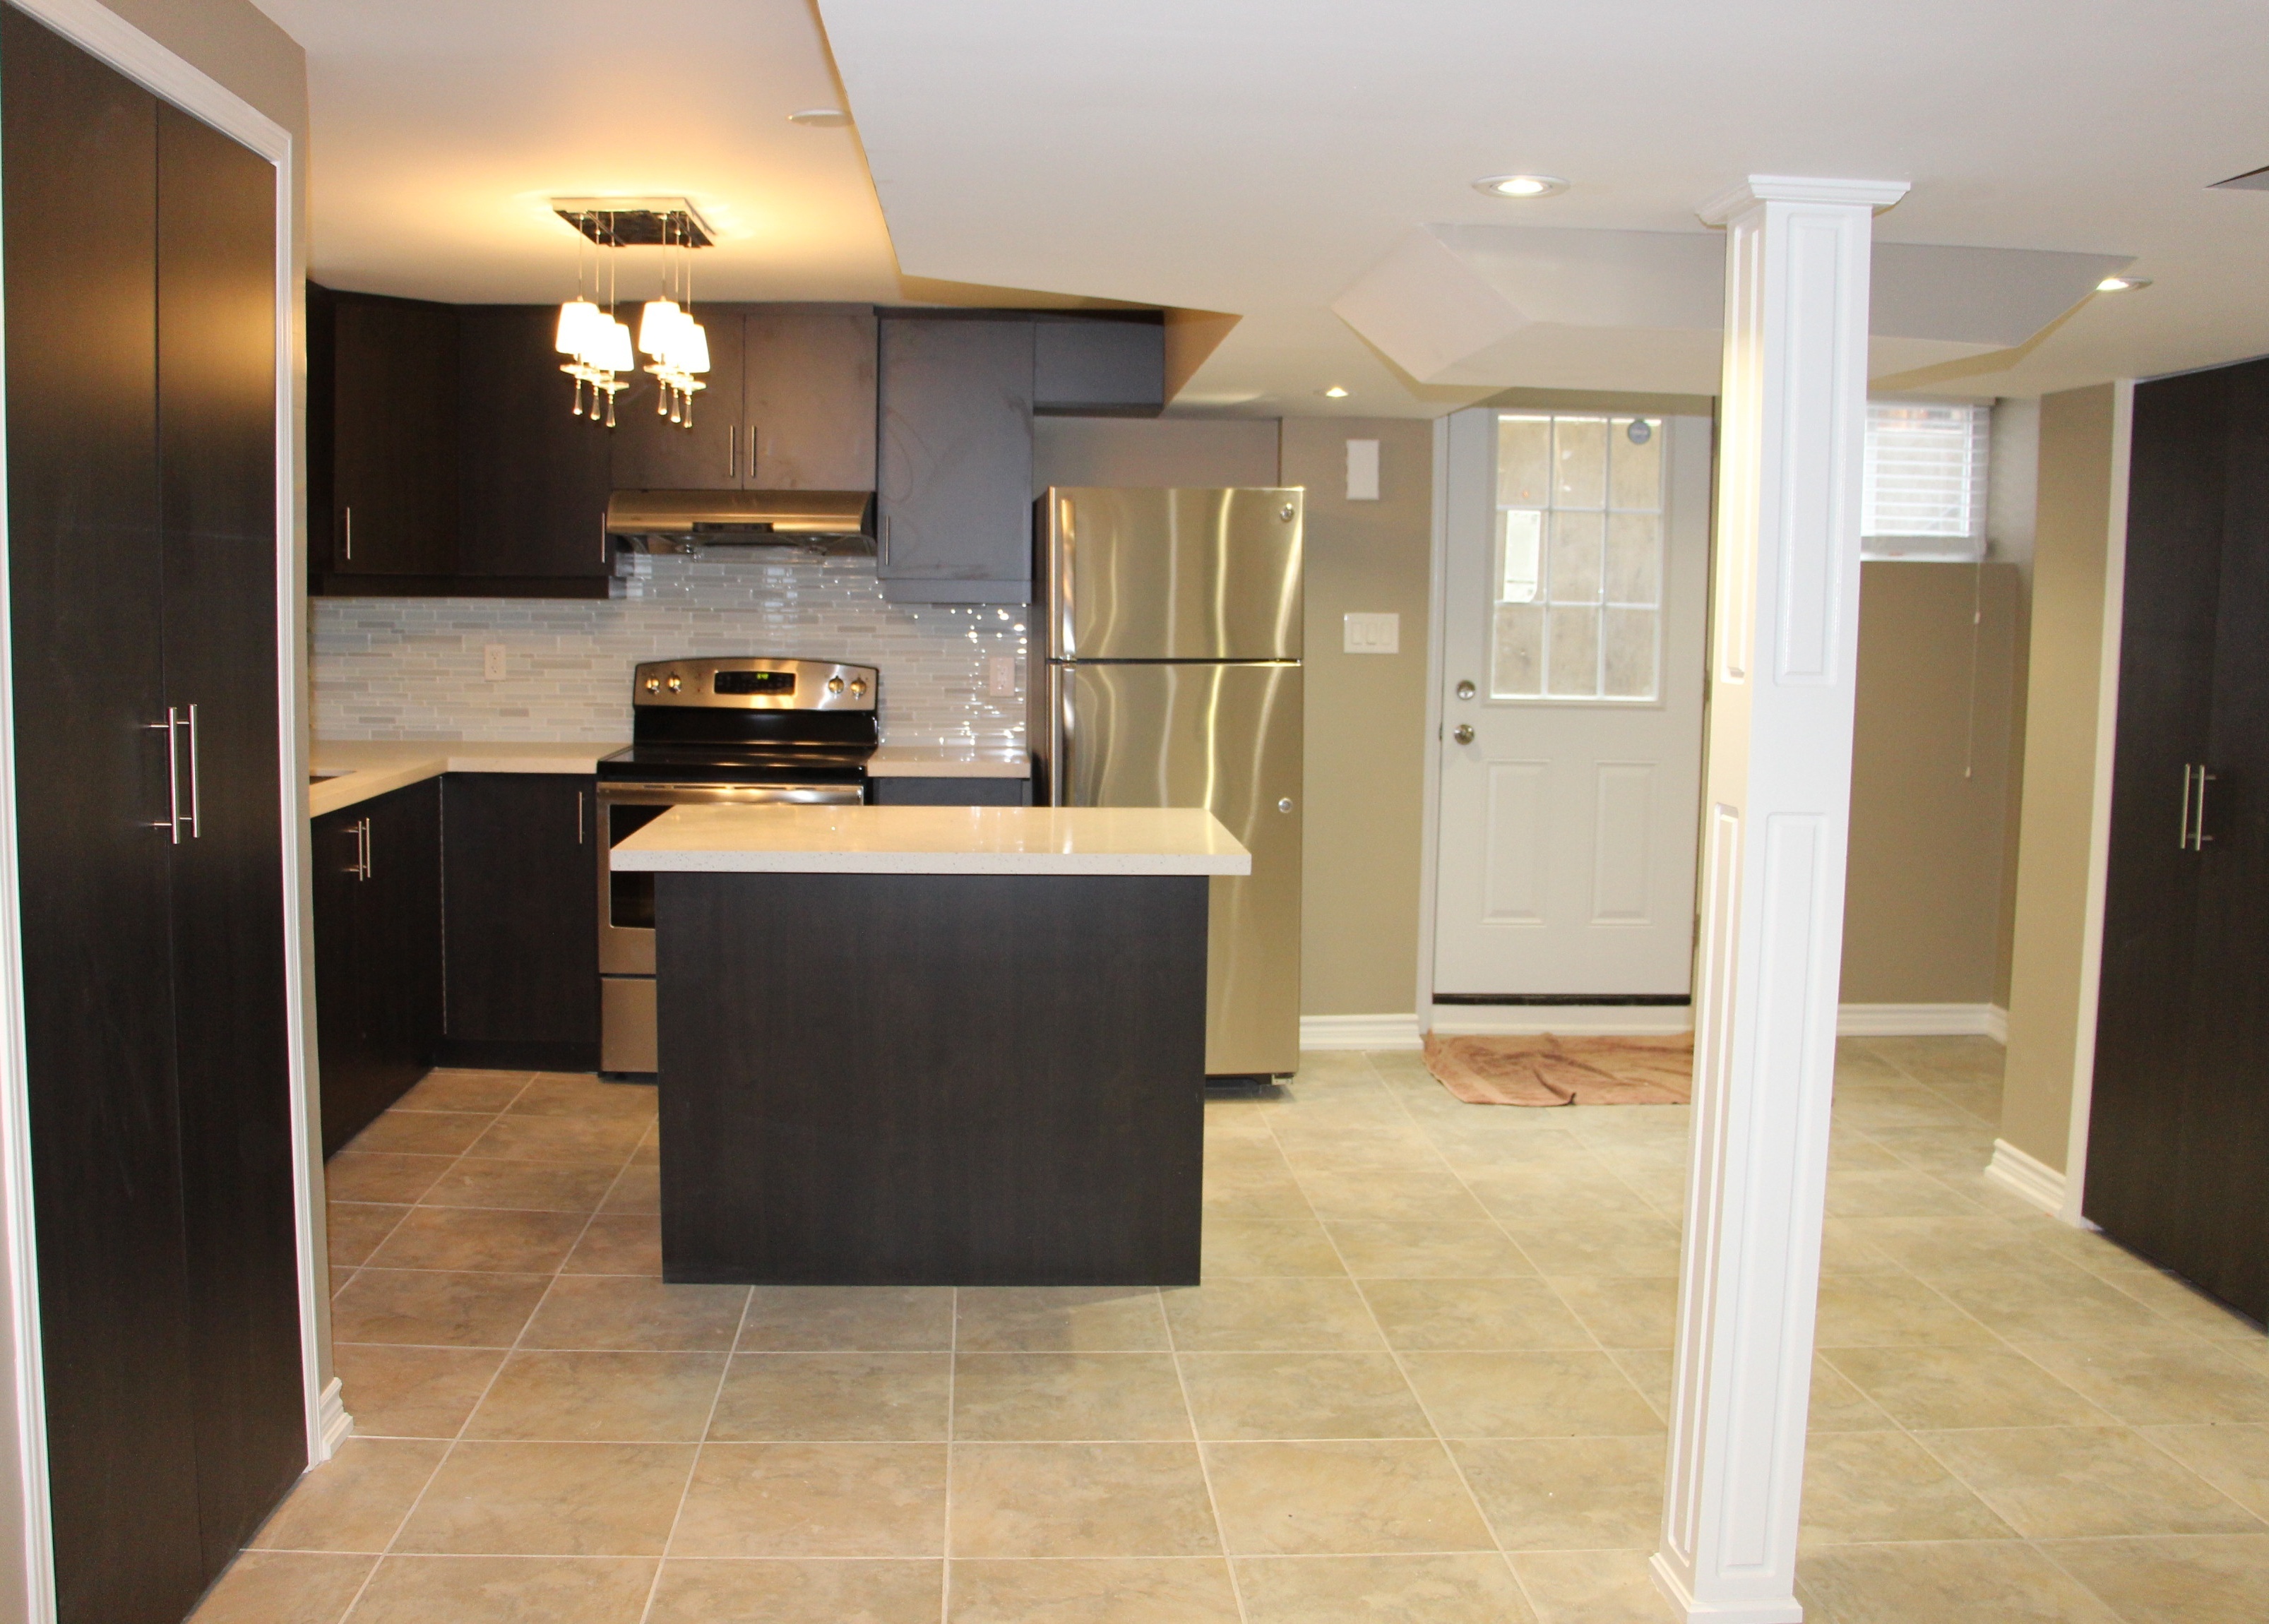 5215 Micmac Crescent in Mississauga, ON is Now Available